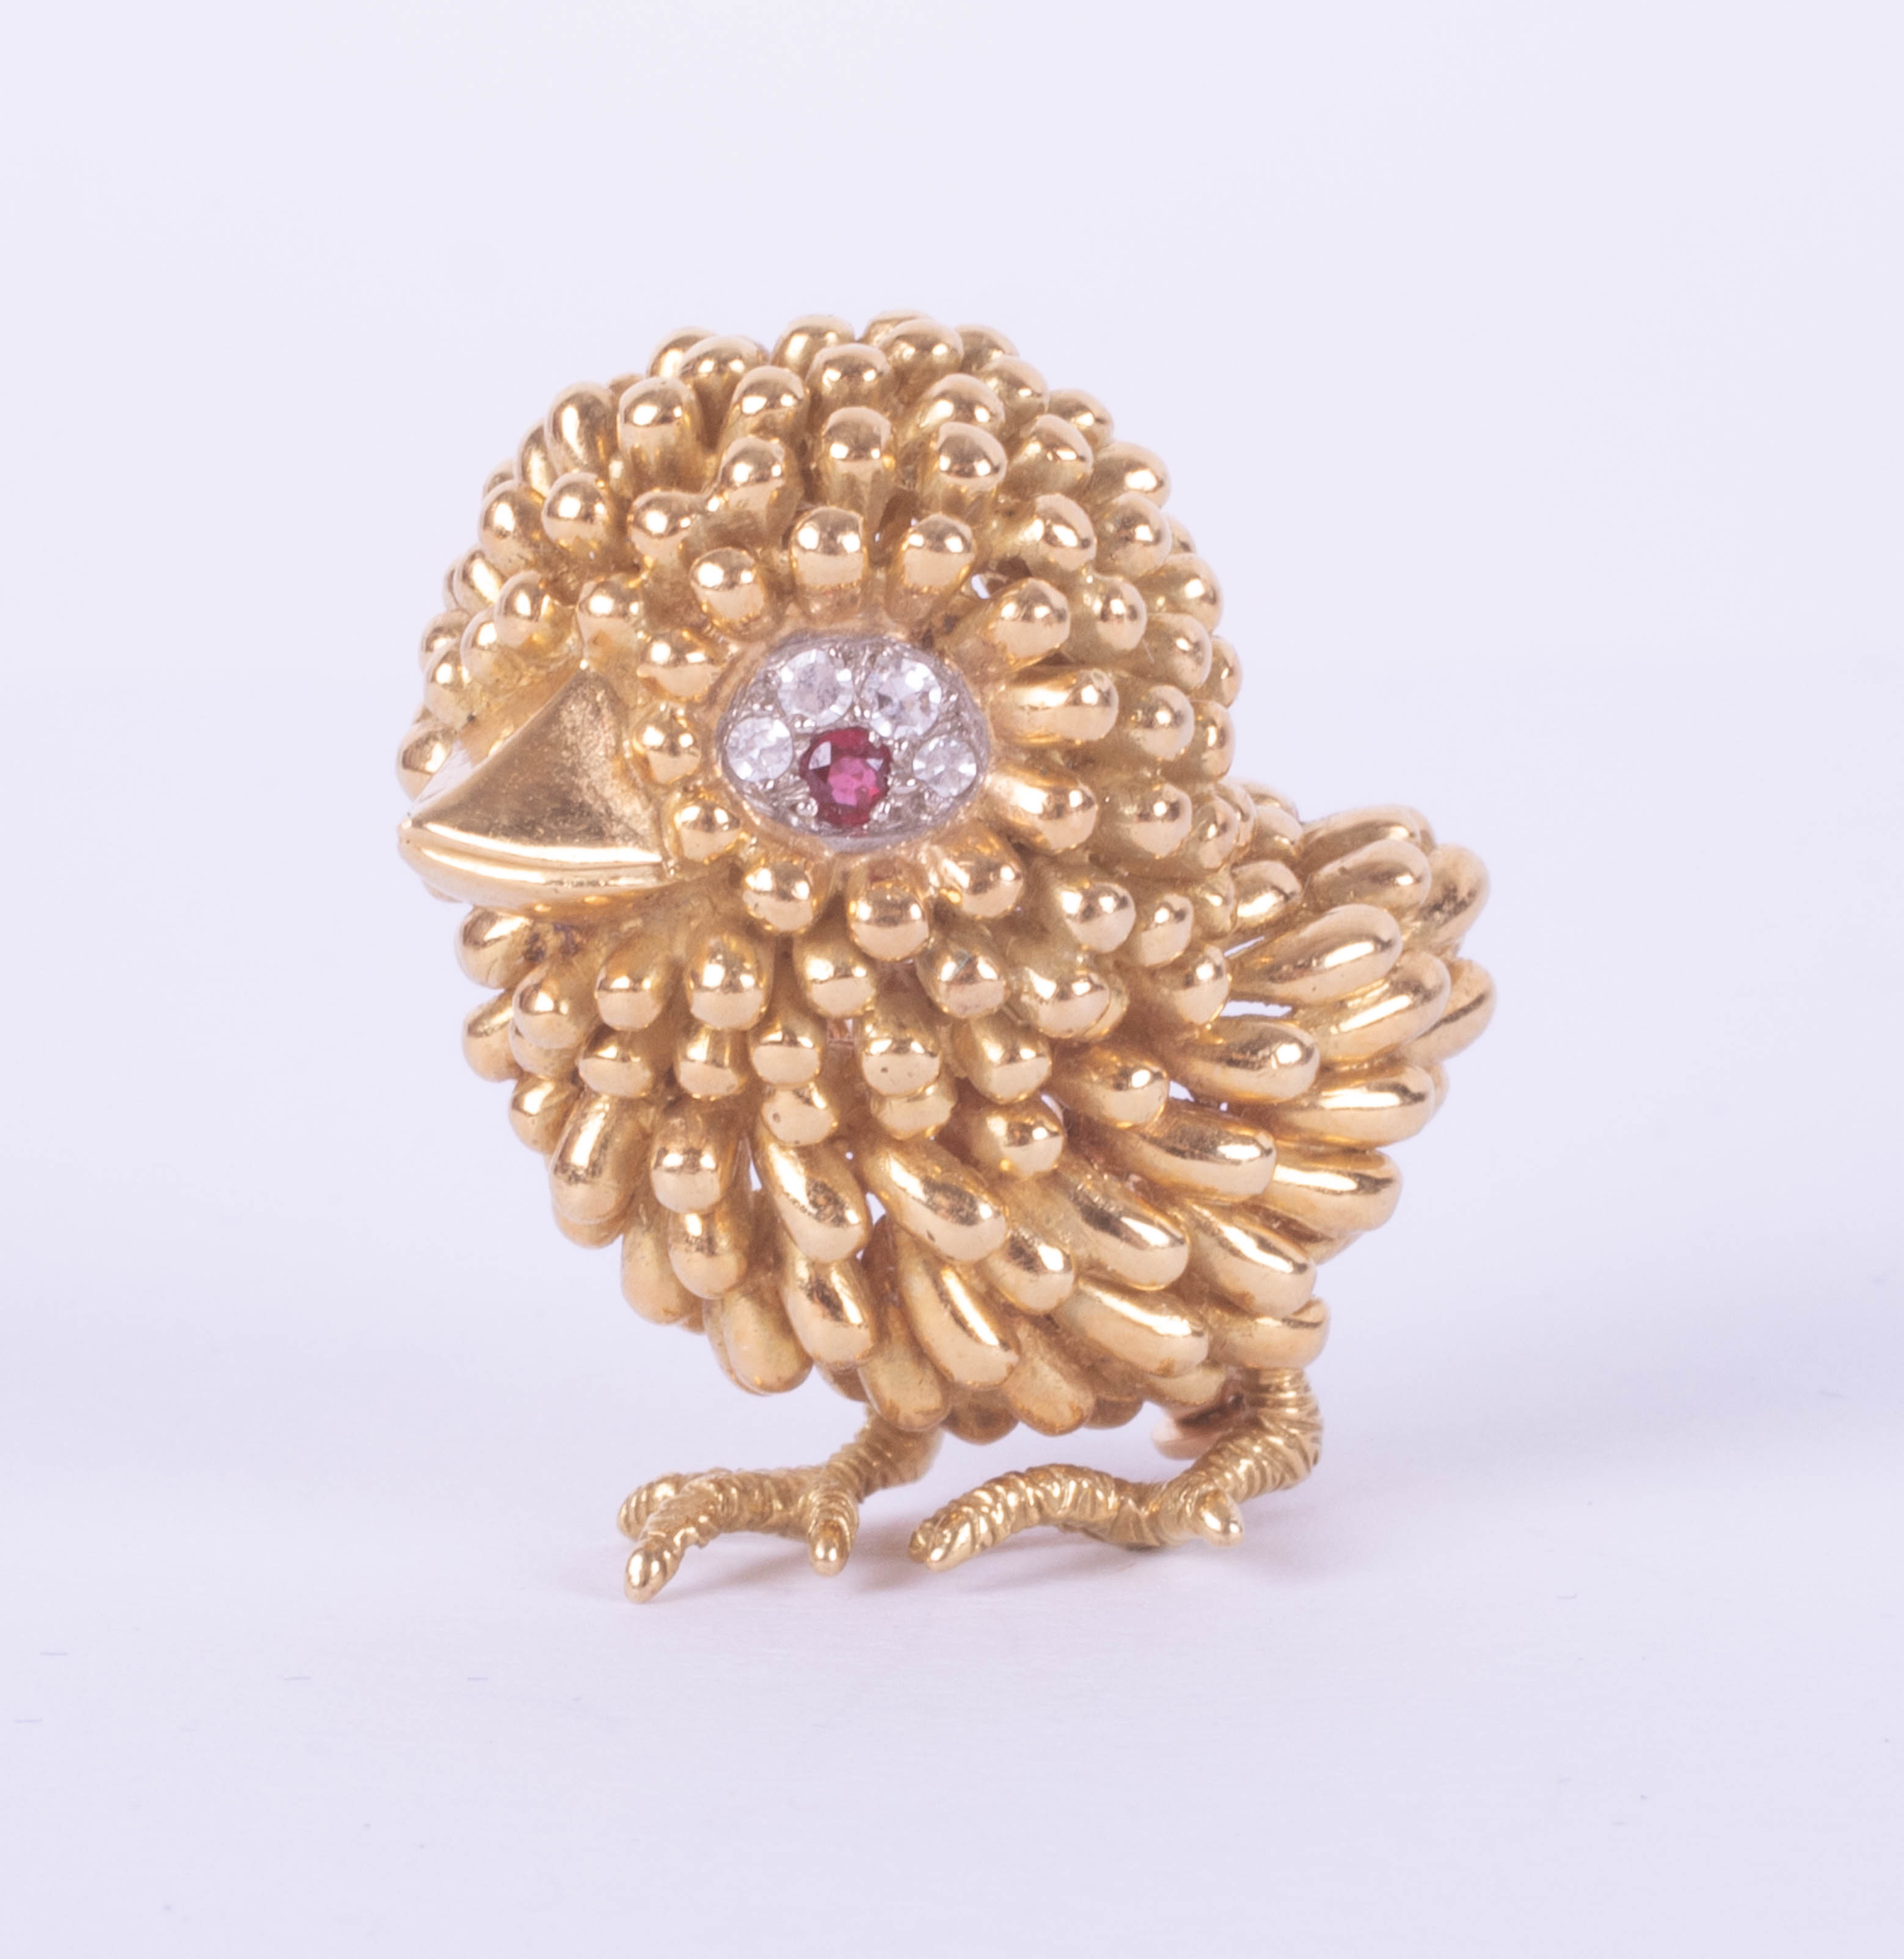 An 18ct gold, ruby and diamond brooch, designed as a chick, the eye mounted with a ruby and with